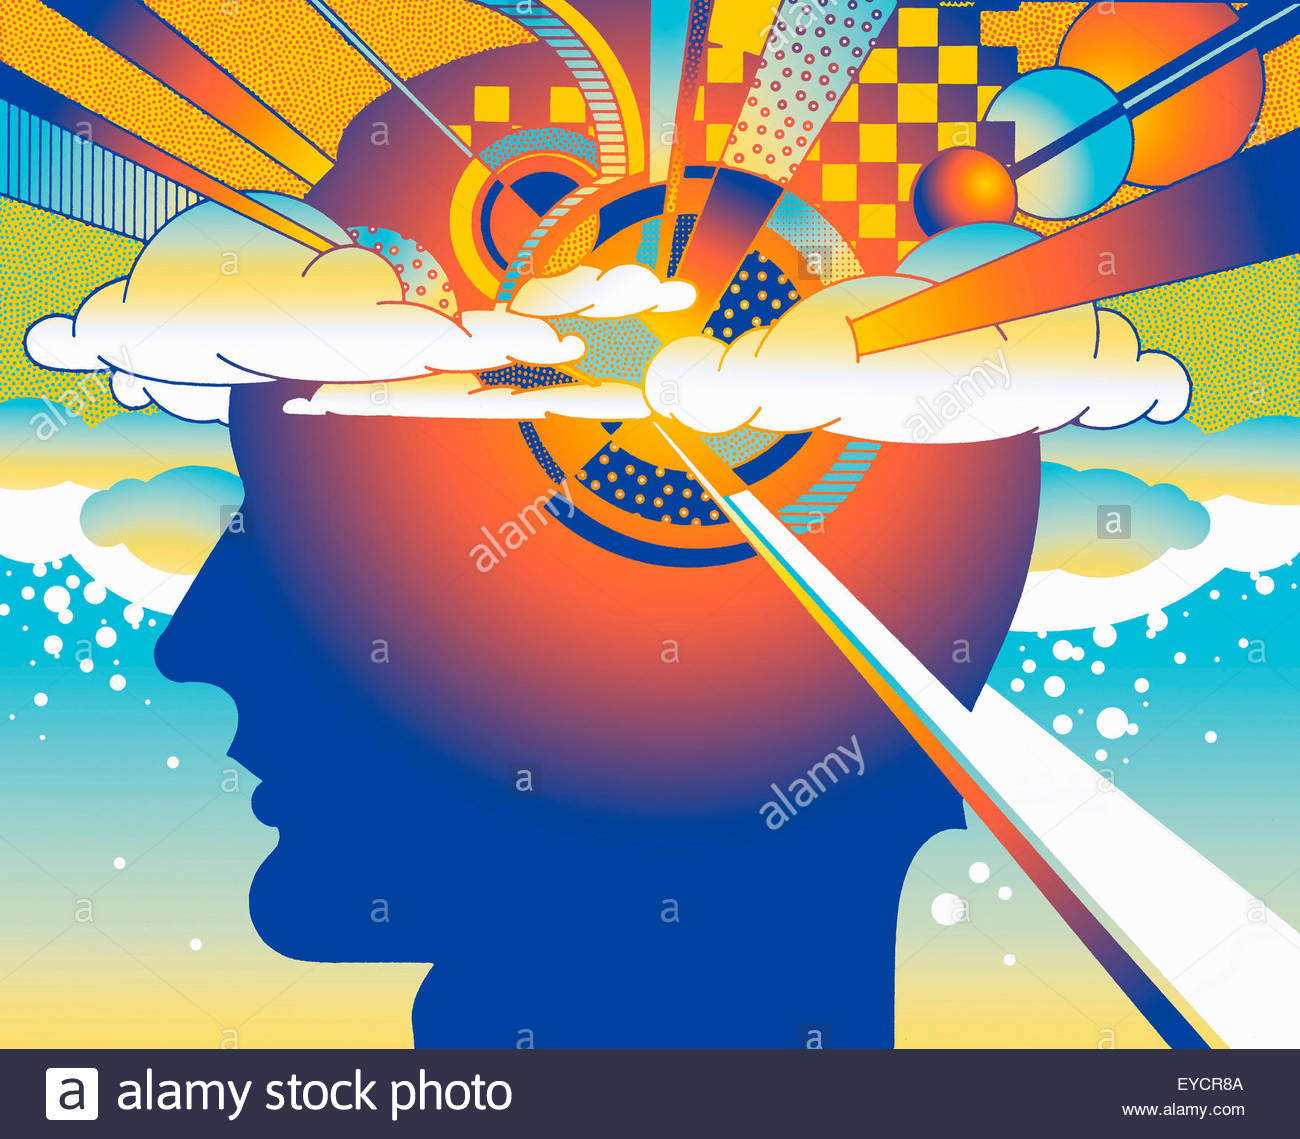 Complex pattern of geometric shapes inside of man's head in the clouds - Stock Image